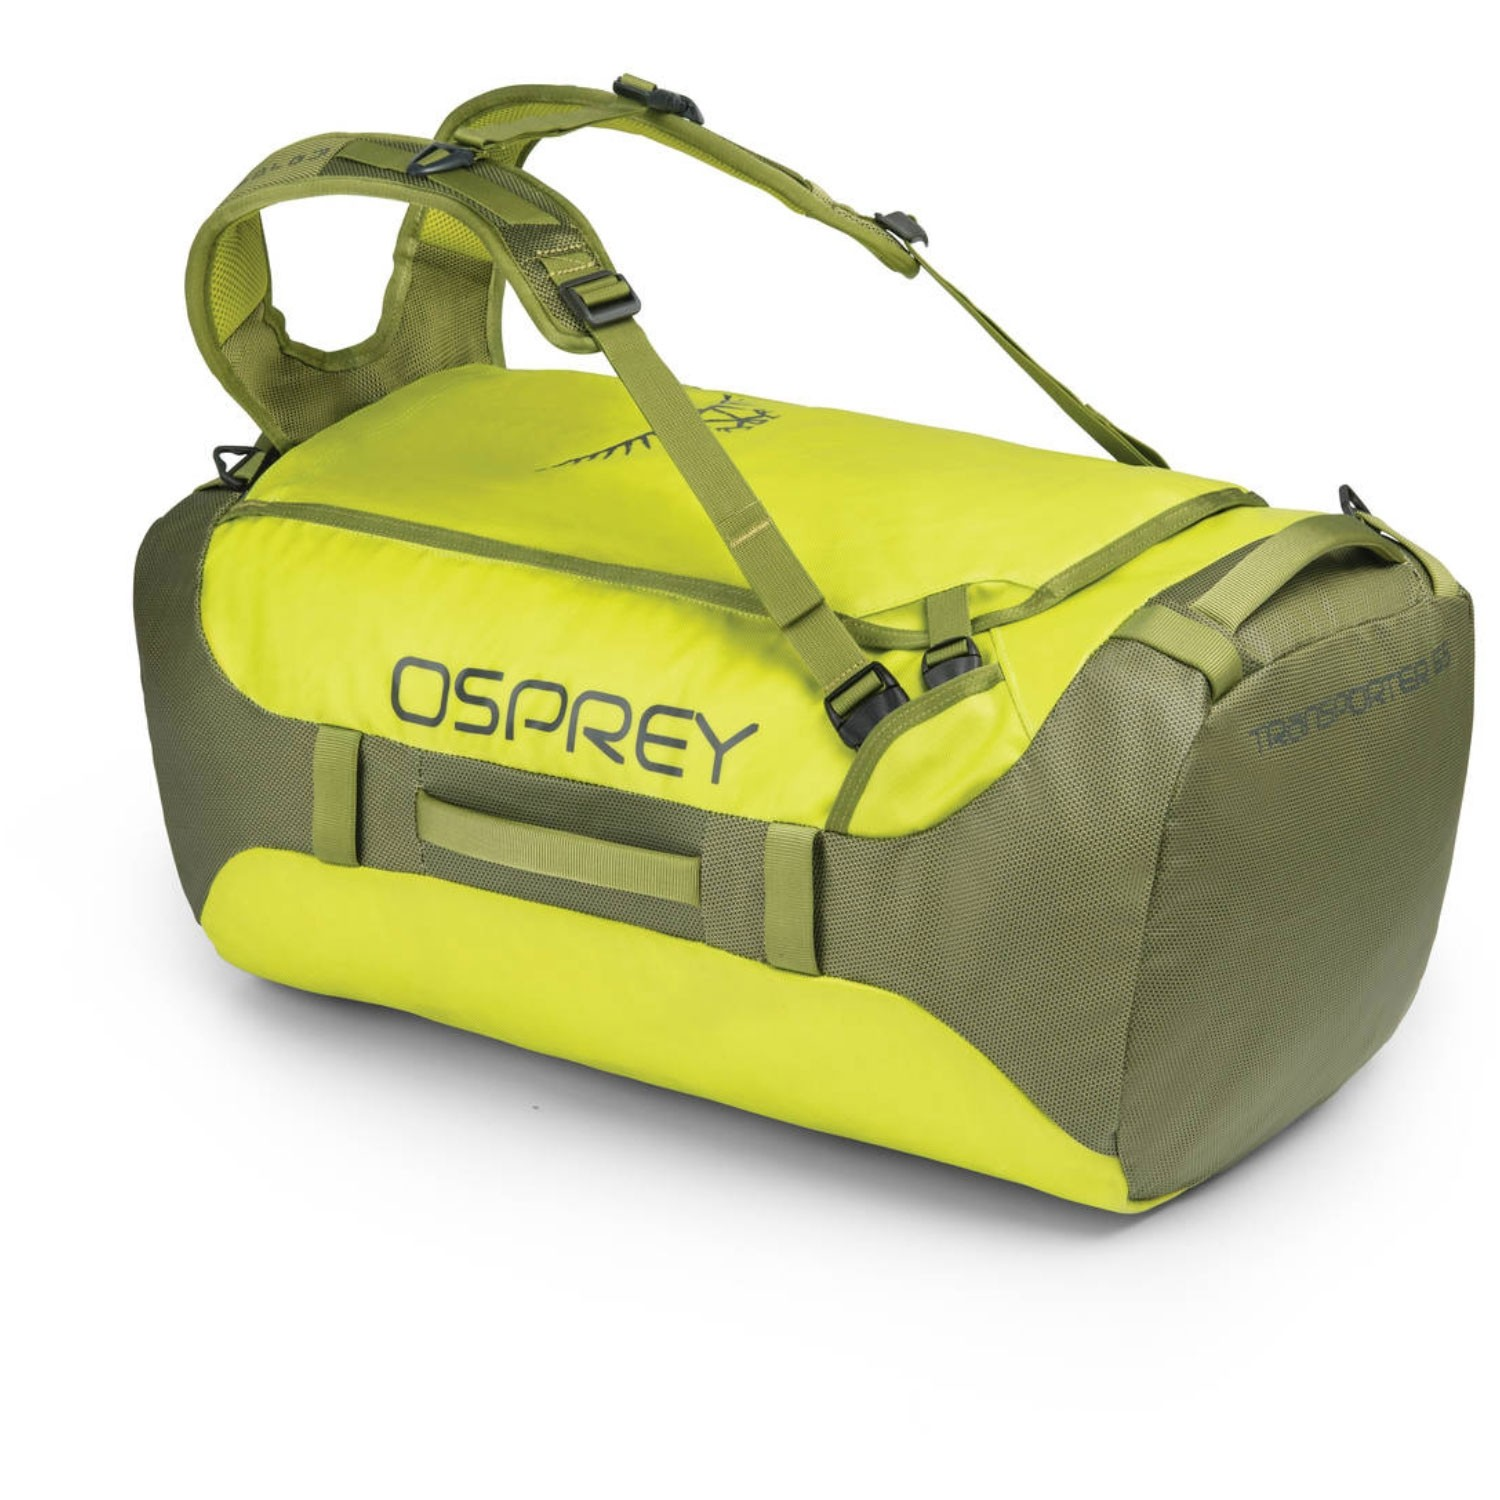 Osprey Transporter 65 Duffle Bag - Sub Lime